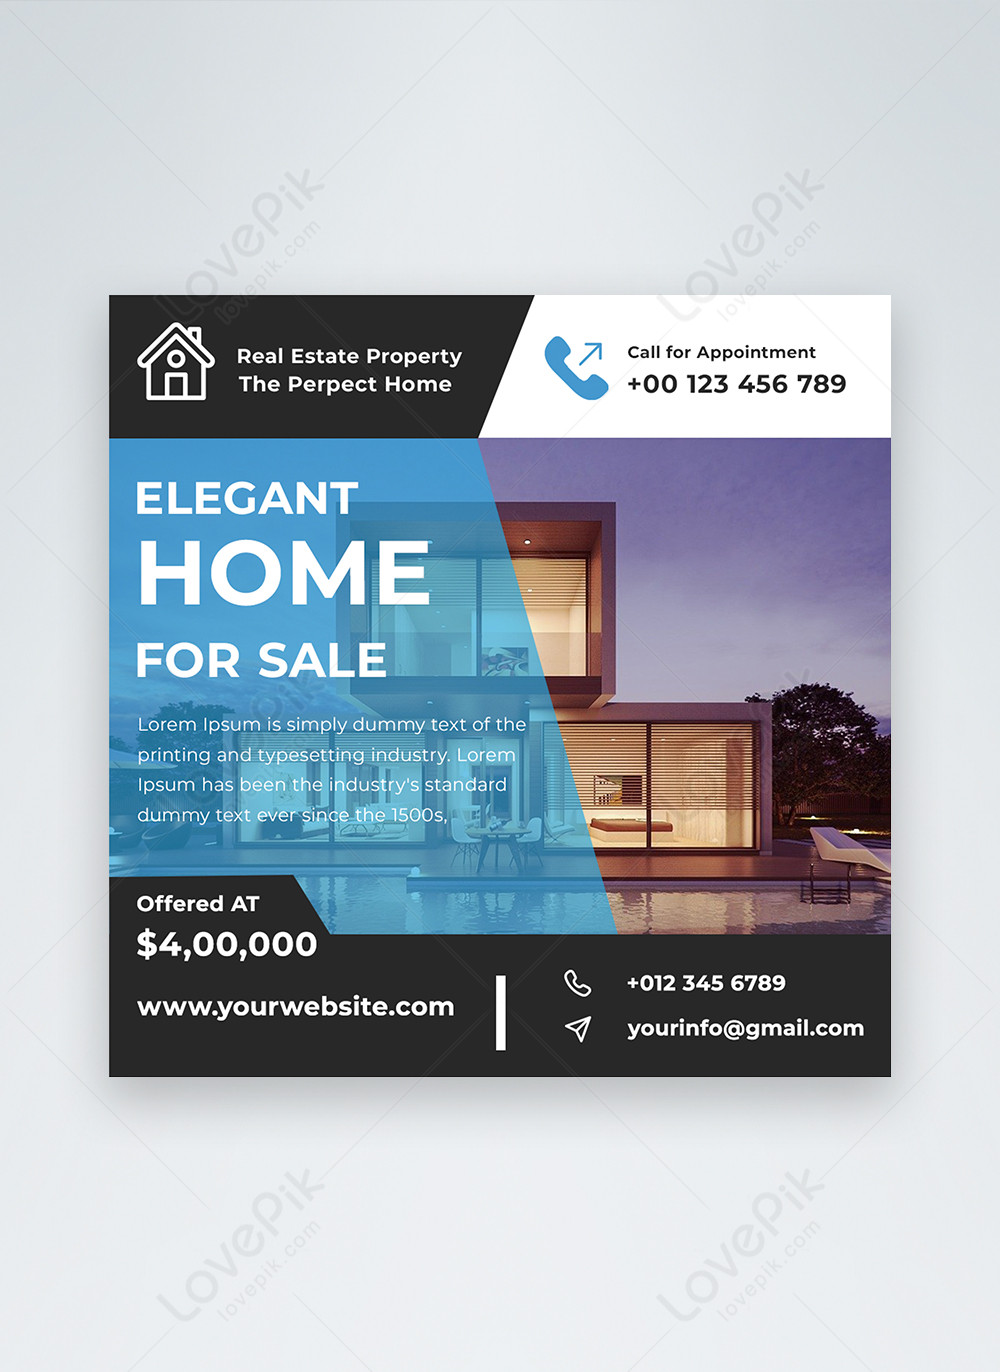 Modern Real Estate Sale Facebook Banner Post Template Image Picture Free Download 450003217 Lovepik Com